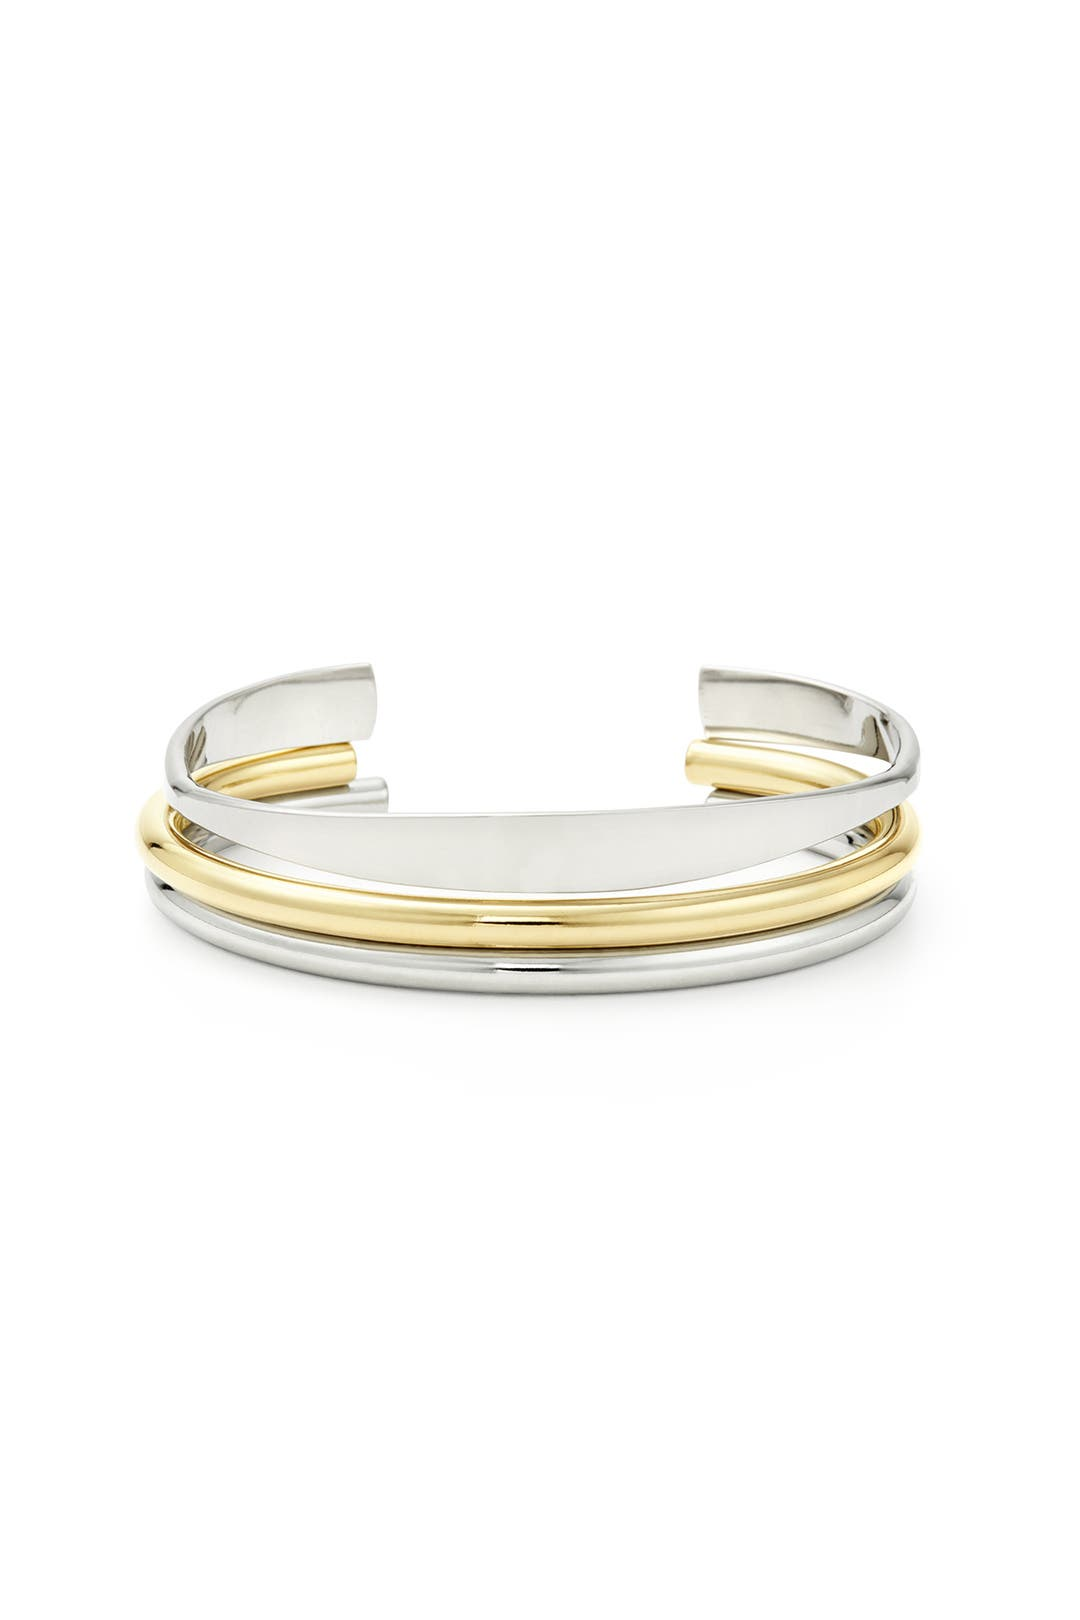 Signature Cuff Set by AV Max